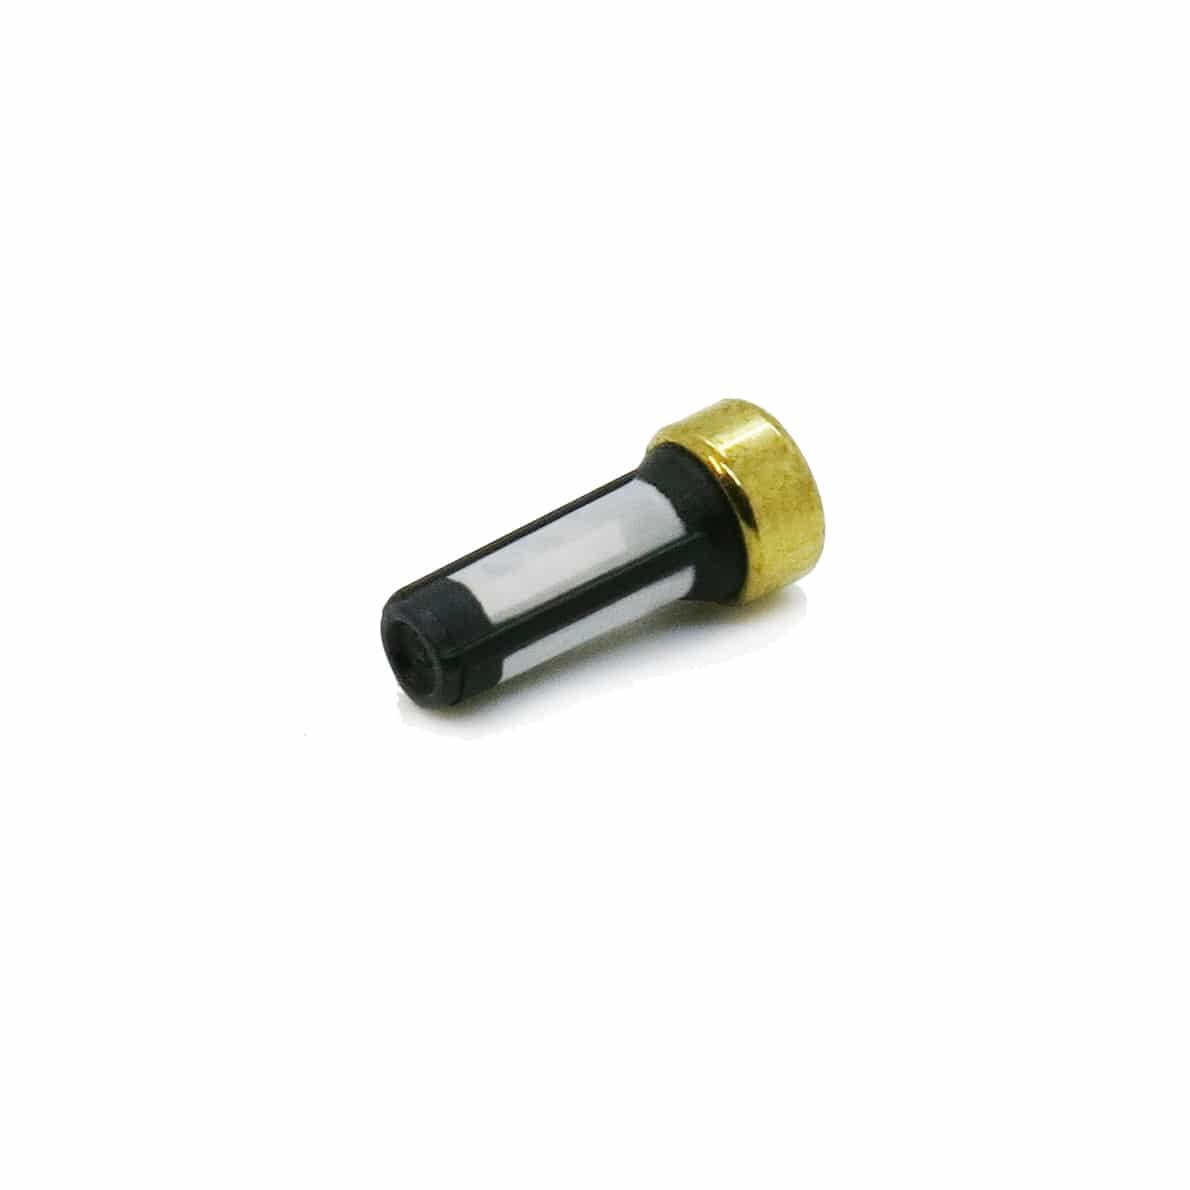 14mm Length Fuel Injector Filter